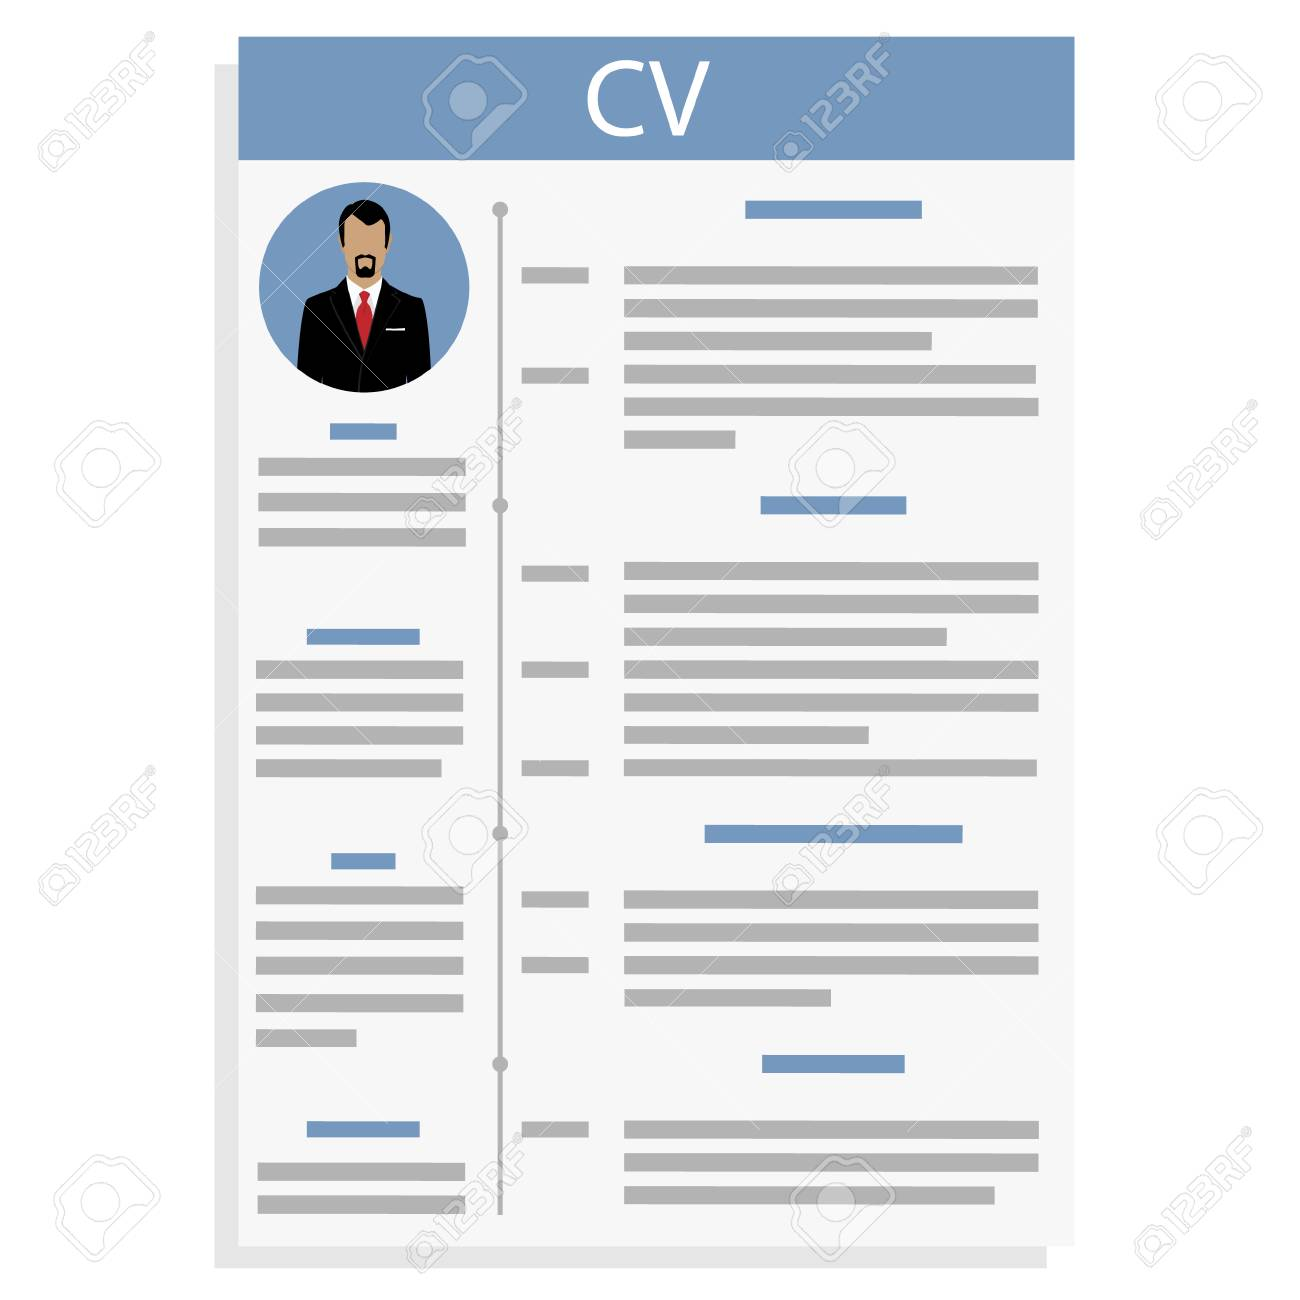 Vector Illustration CV Or Resume Design Template With Man Photo ...